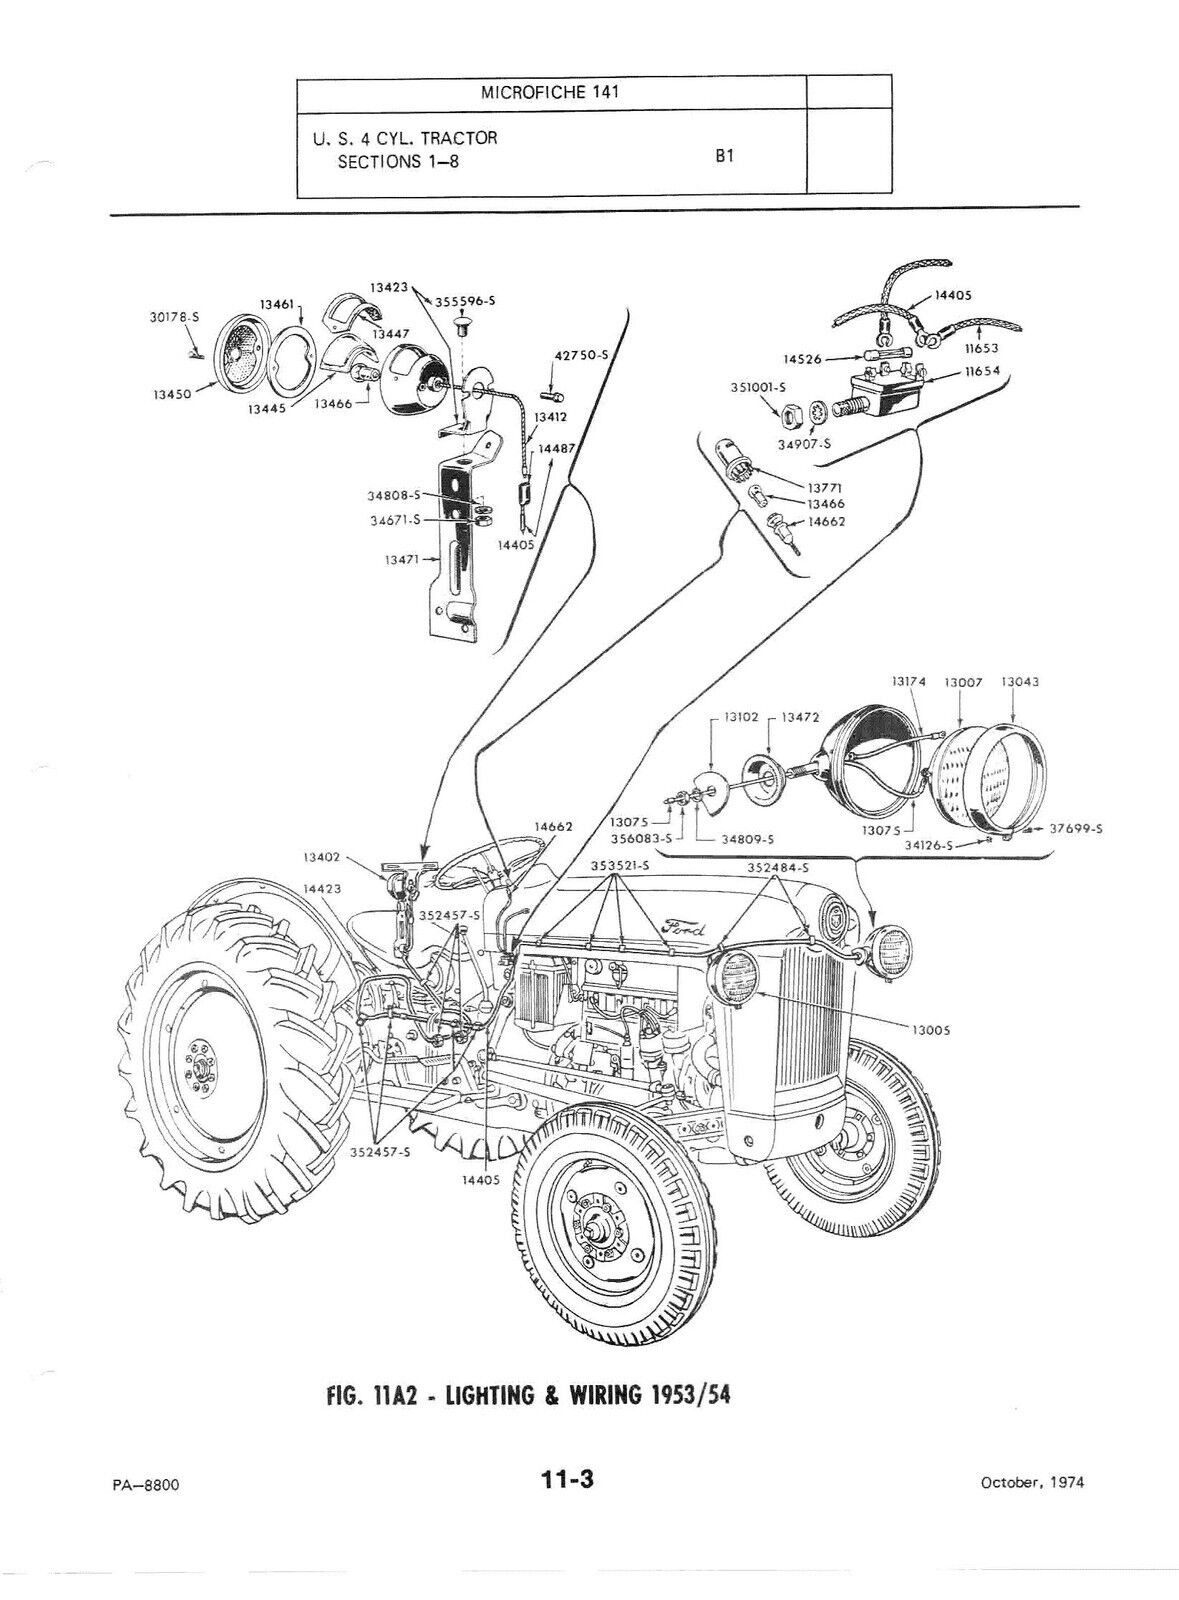 901 Ford Tractor Wiring Diagram Great Design Of Naa Electrical Parts Engine And Alternator